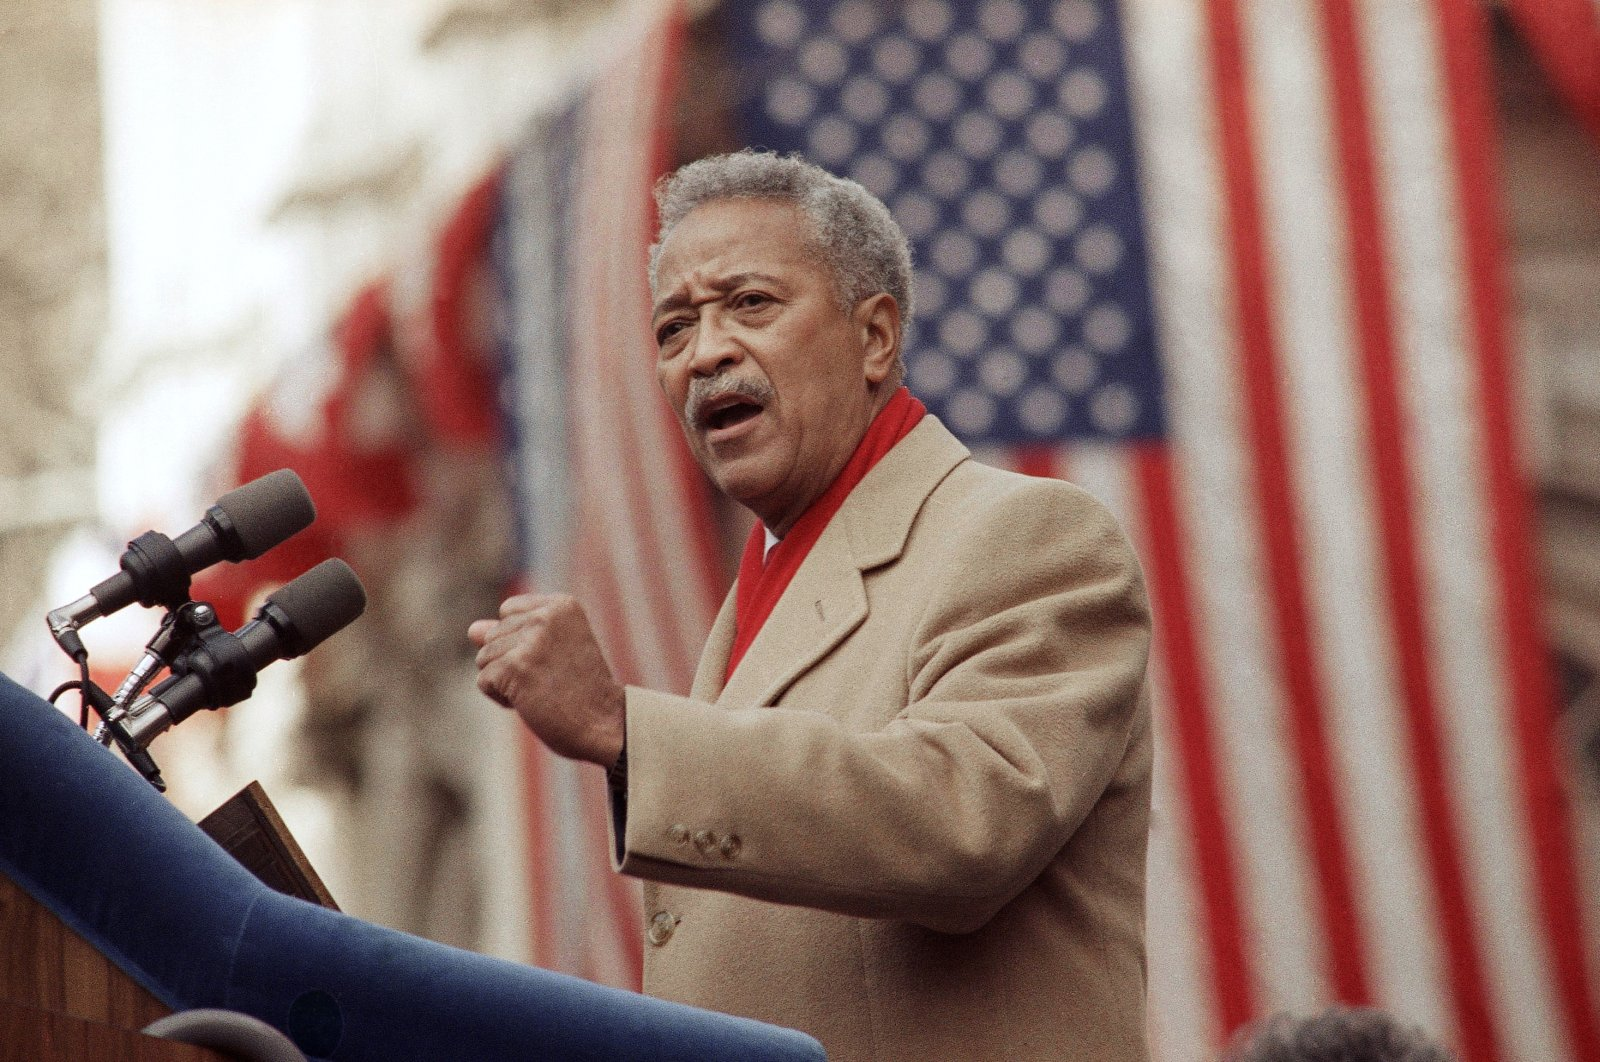 David Dinkins delivers his first speech as mayor of New York, in New York City, Jan. 2, 1990. (AP Photo)